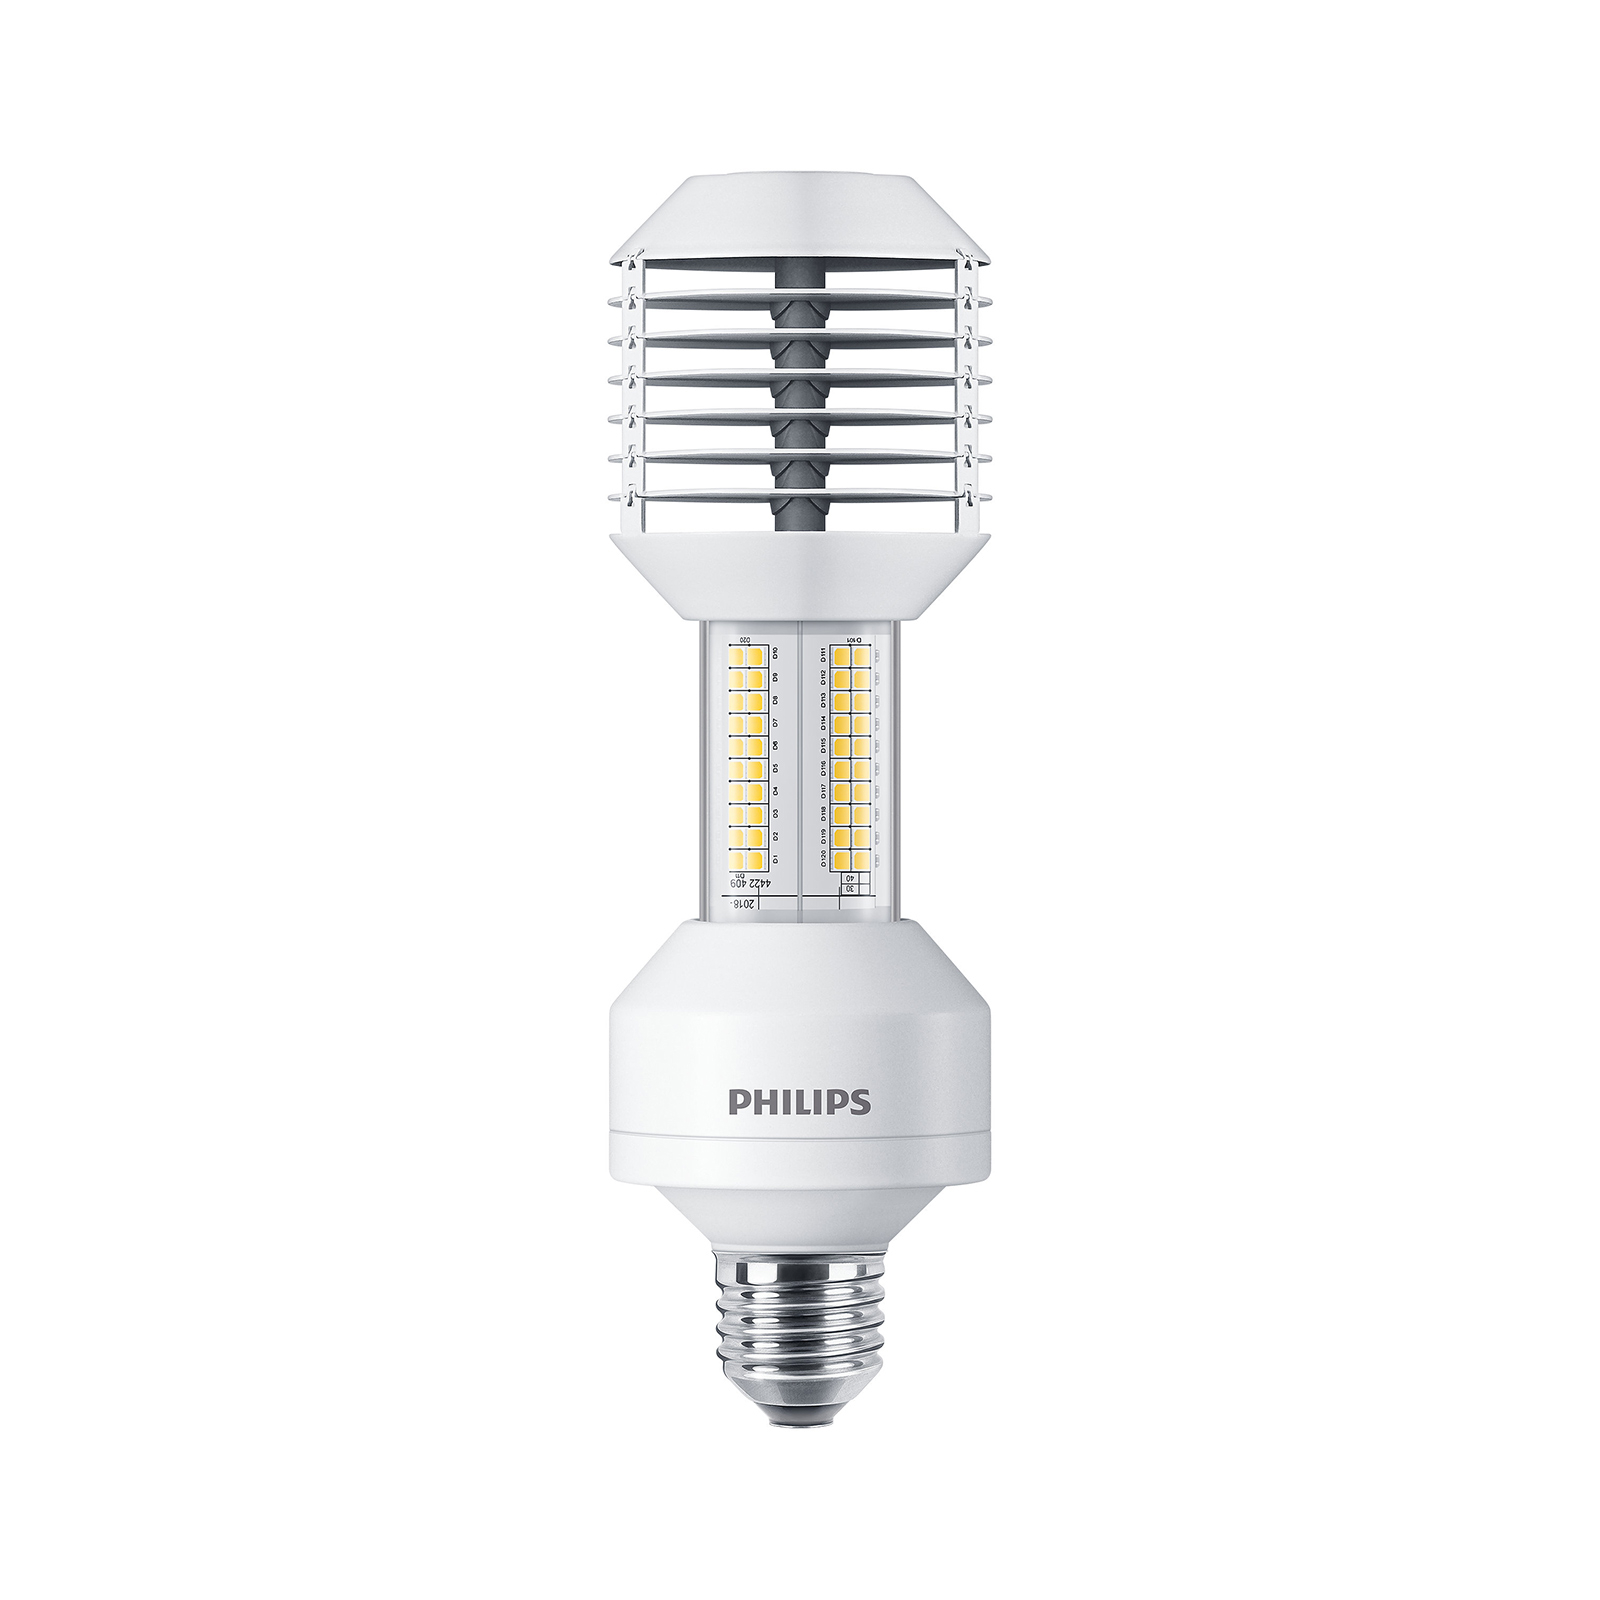 Philips E27 ampoule LED TrueForce Road 60 35 W 740